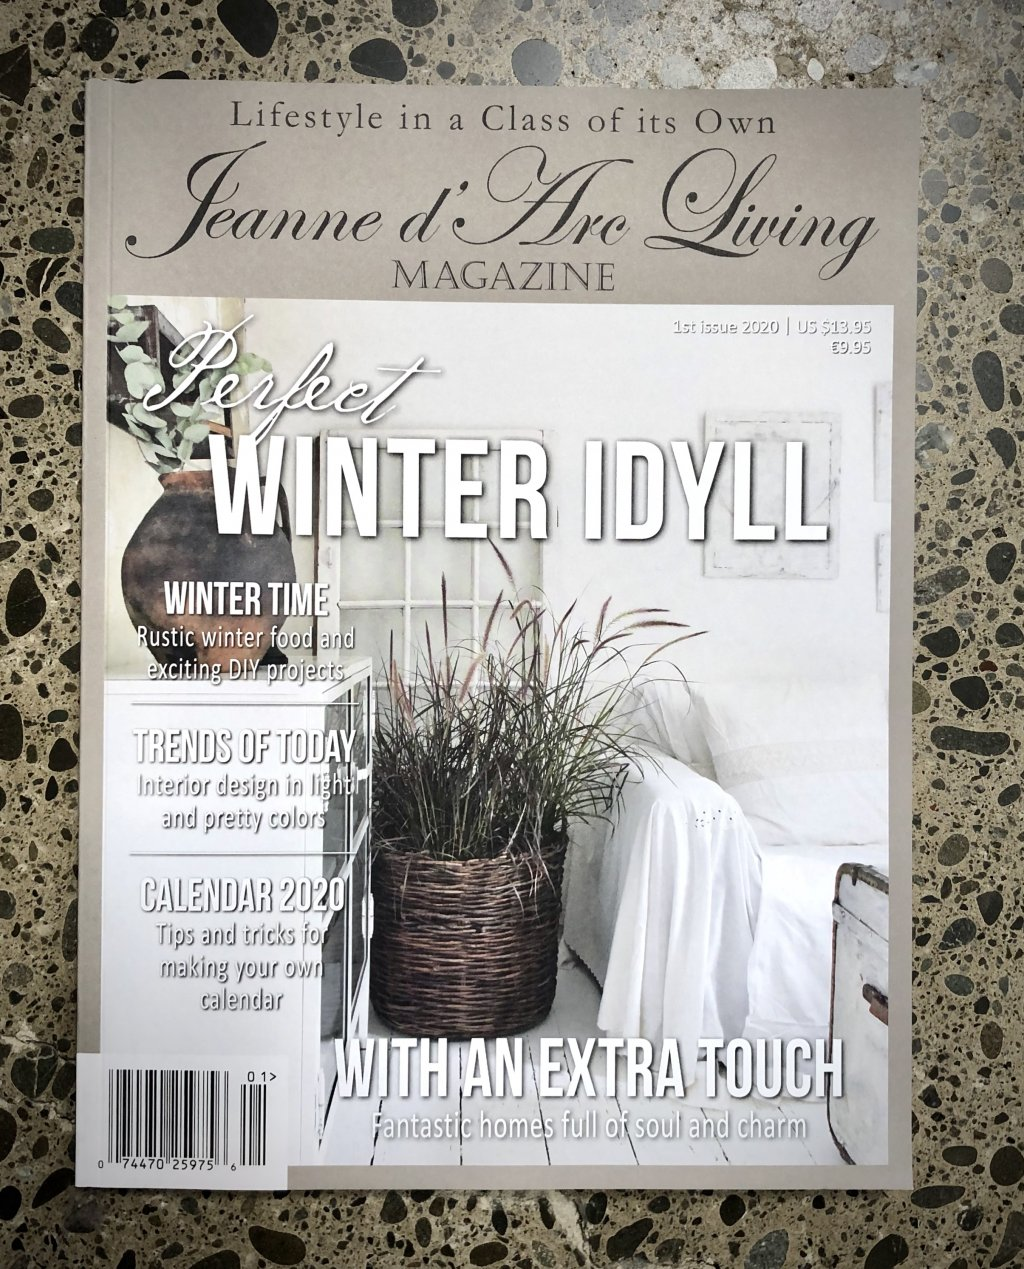 Jeanne d'Arc Living Magazine | Issue 1| 2020